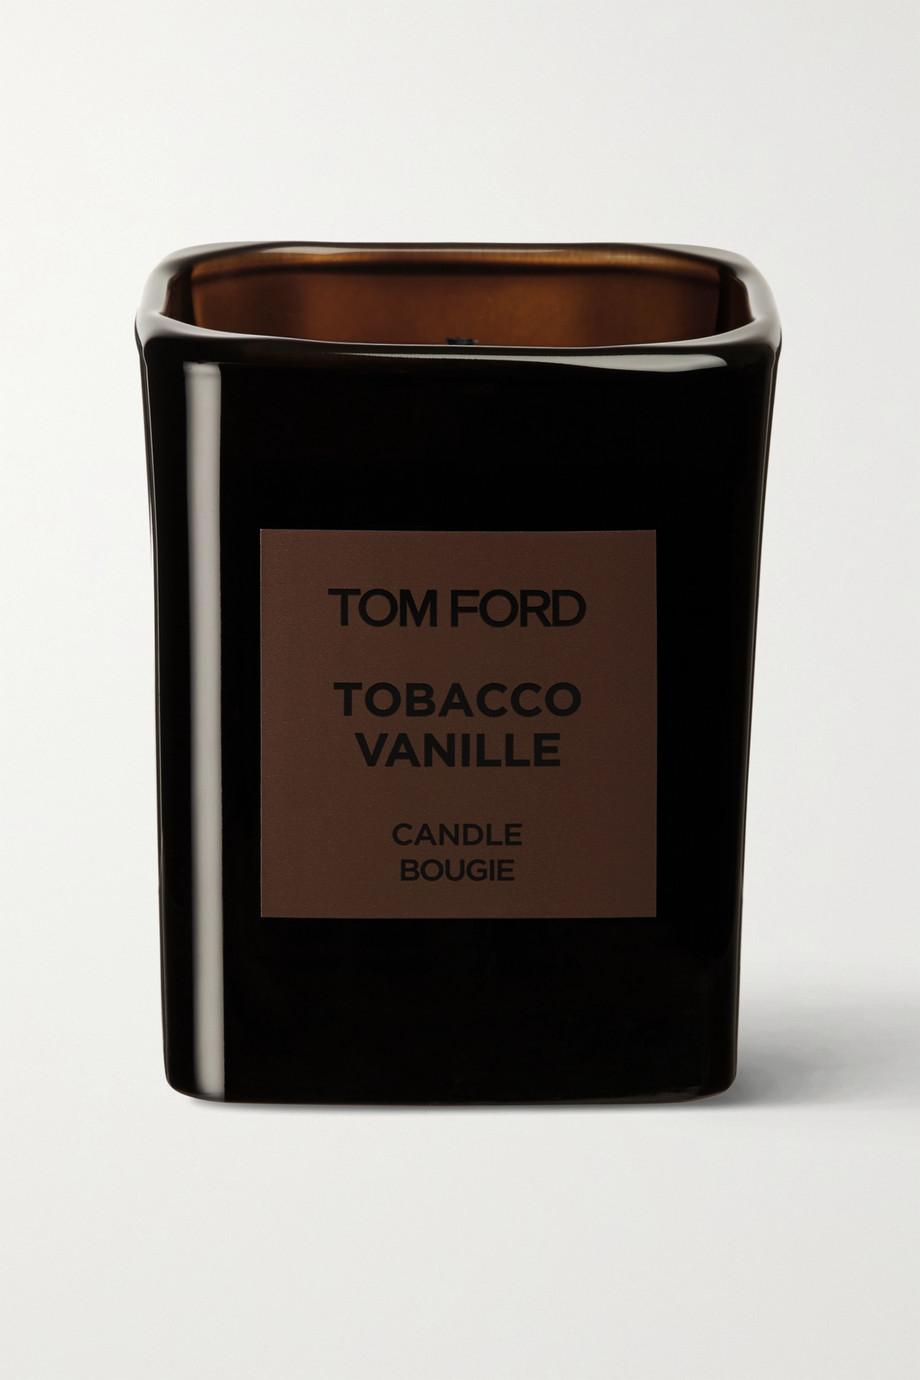 TOM FORD BEAUTY Private Blend Tobacco Vanille Scented Candle, 200g